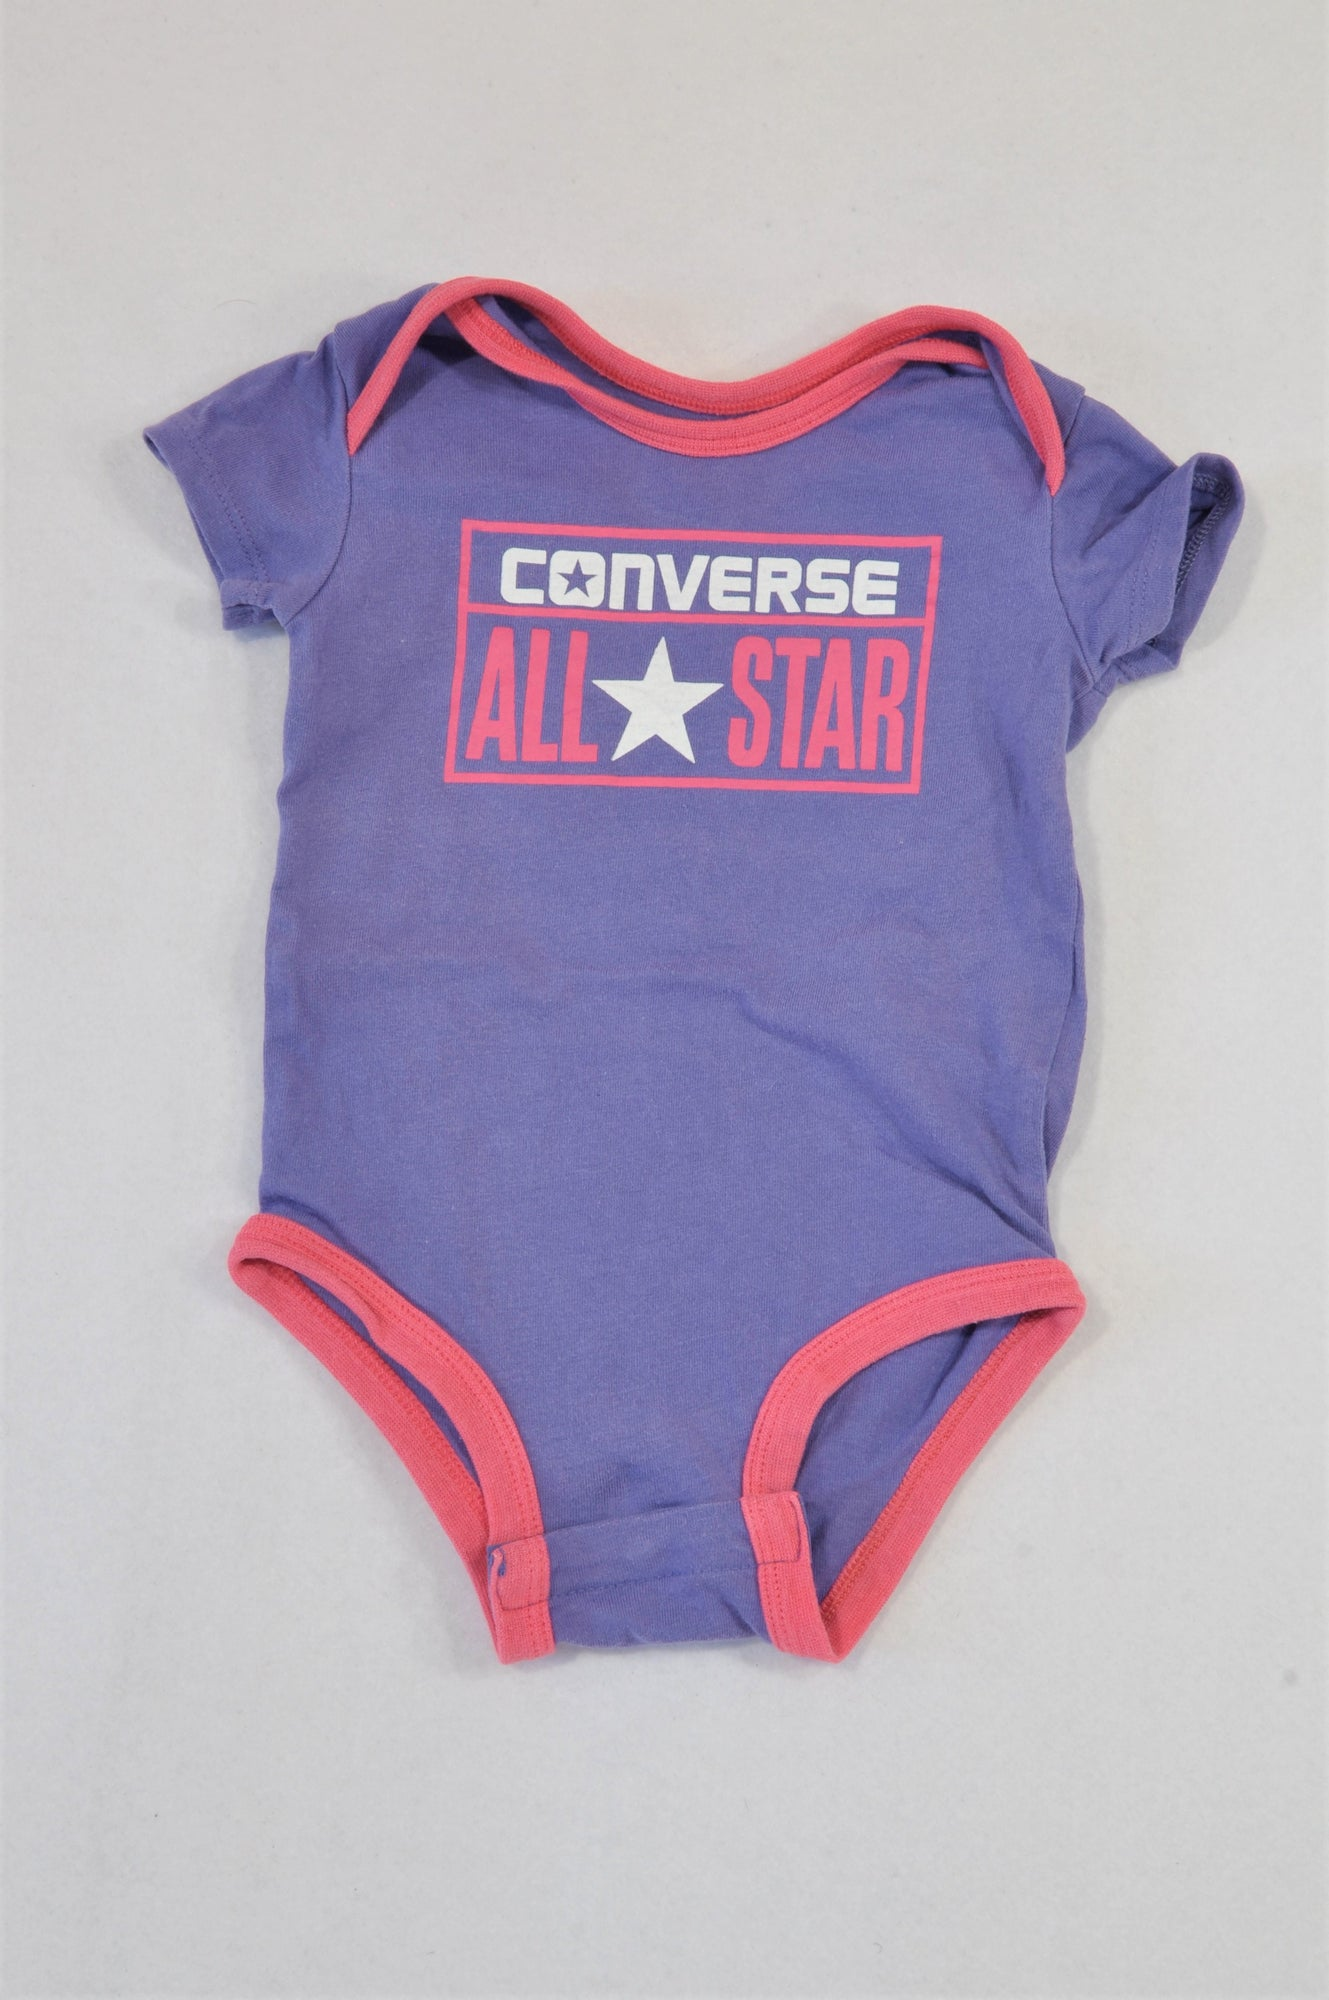 All Stars Purple Converse Pink Trim Baby Grow Girls 3-6 months